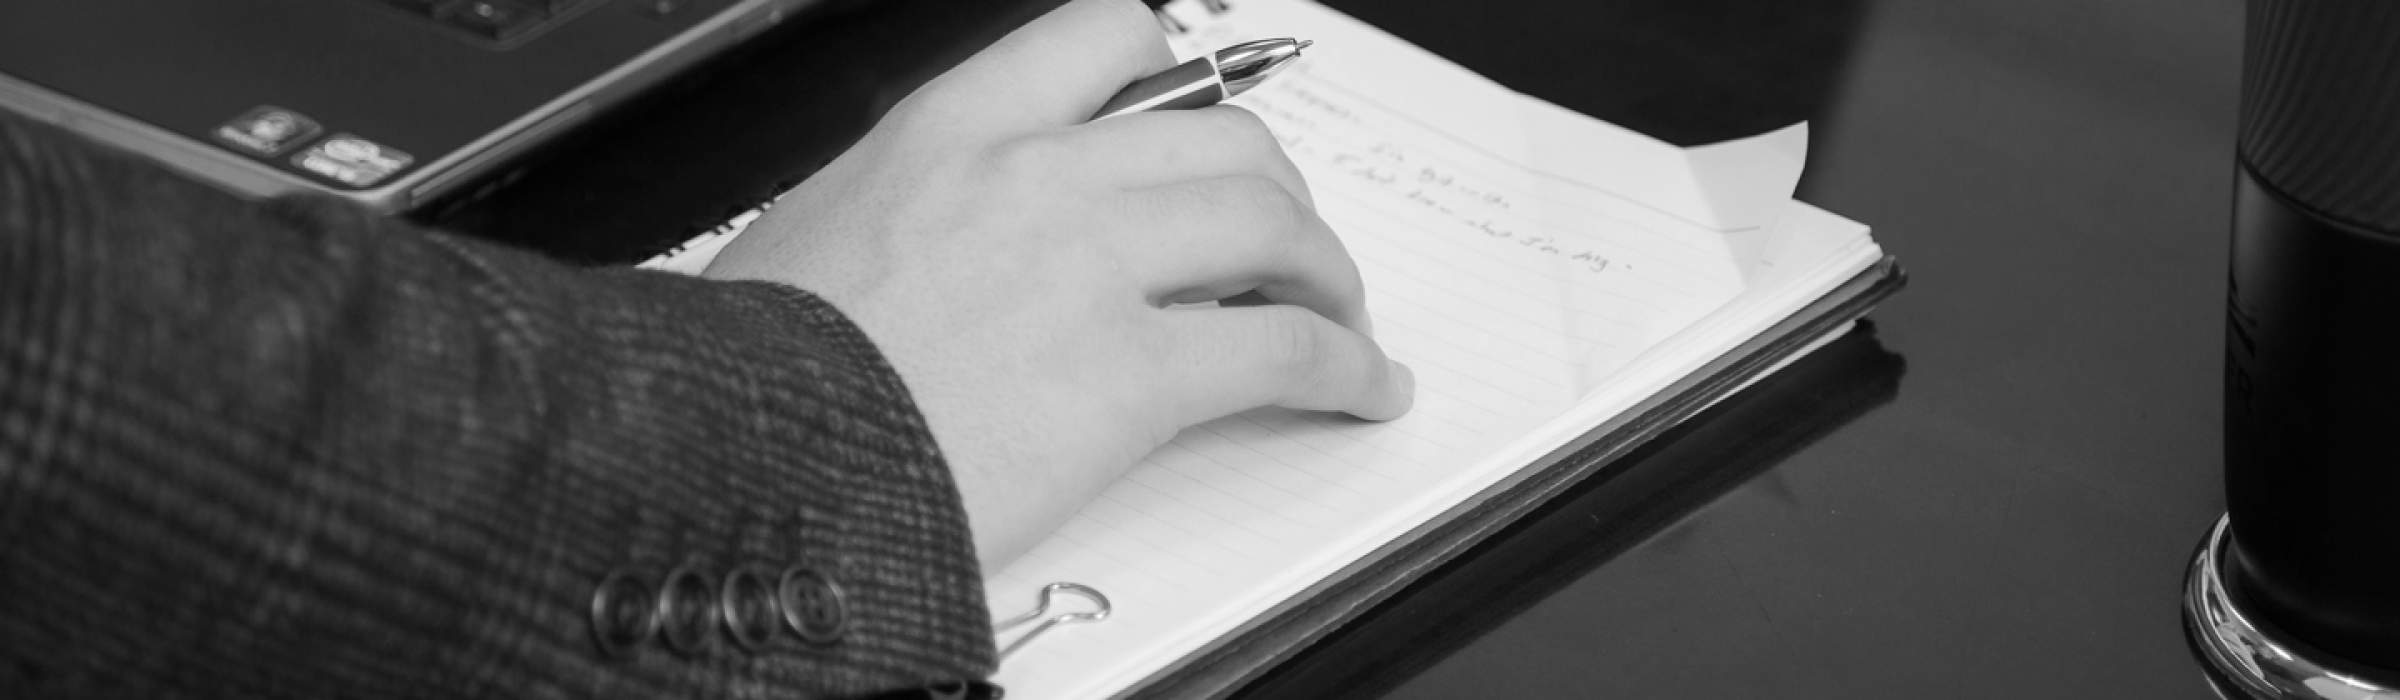 A person holding a pen resting their hand on a notebook